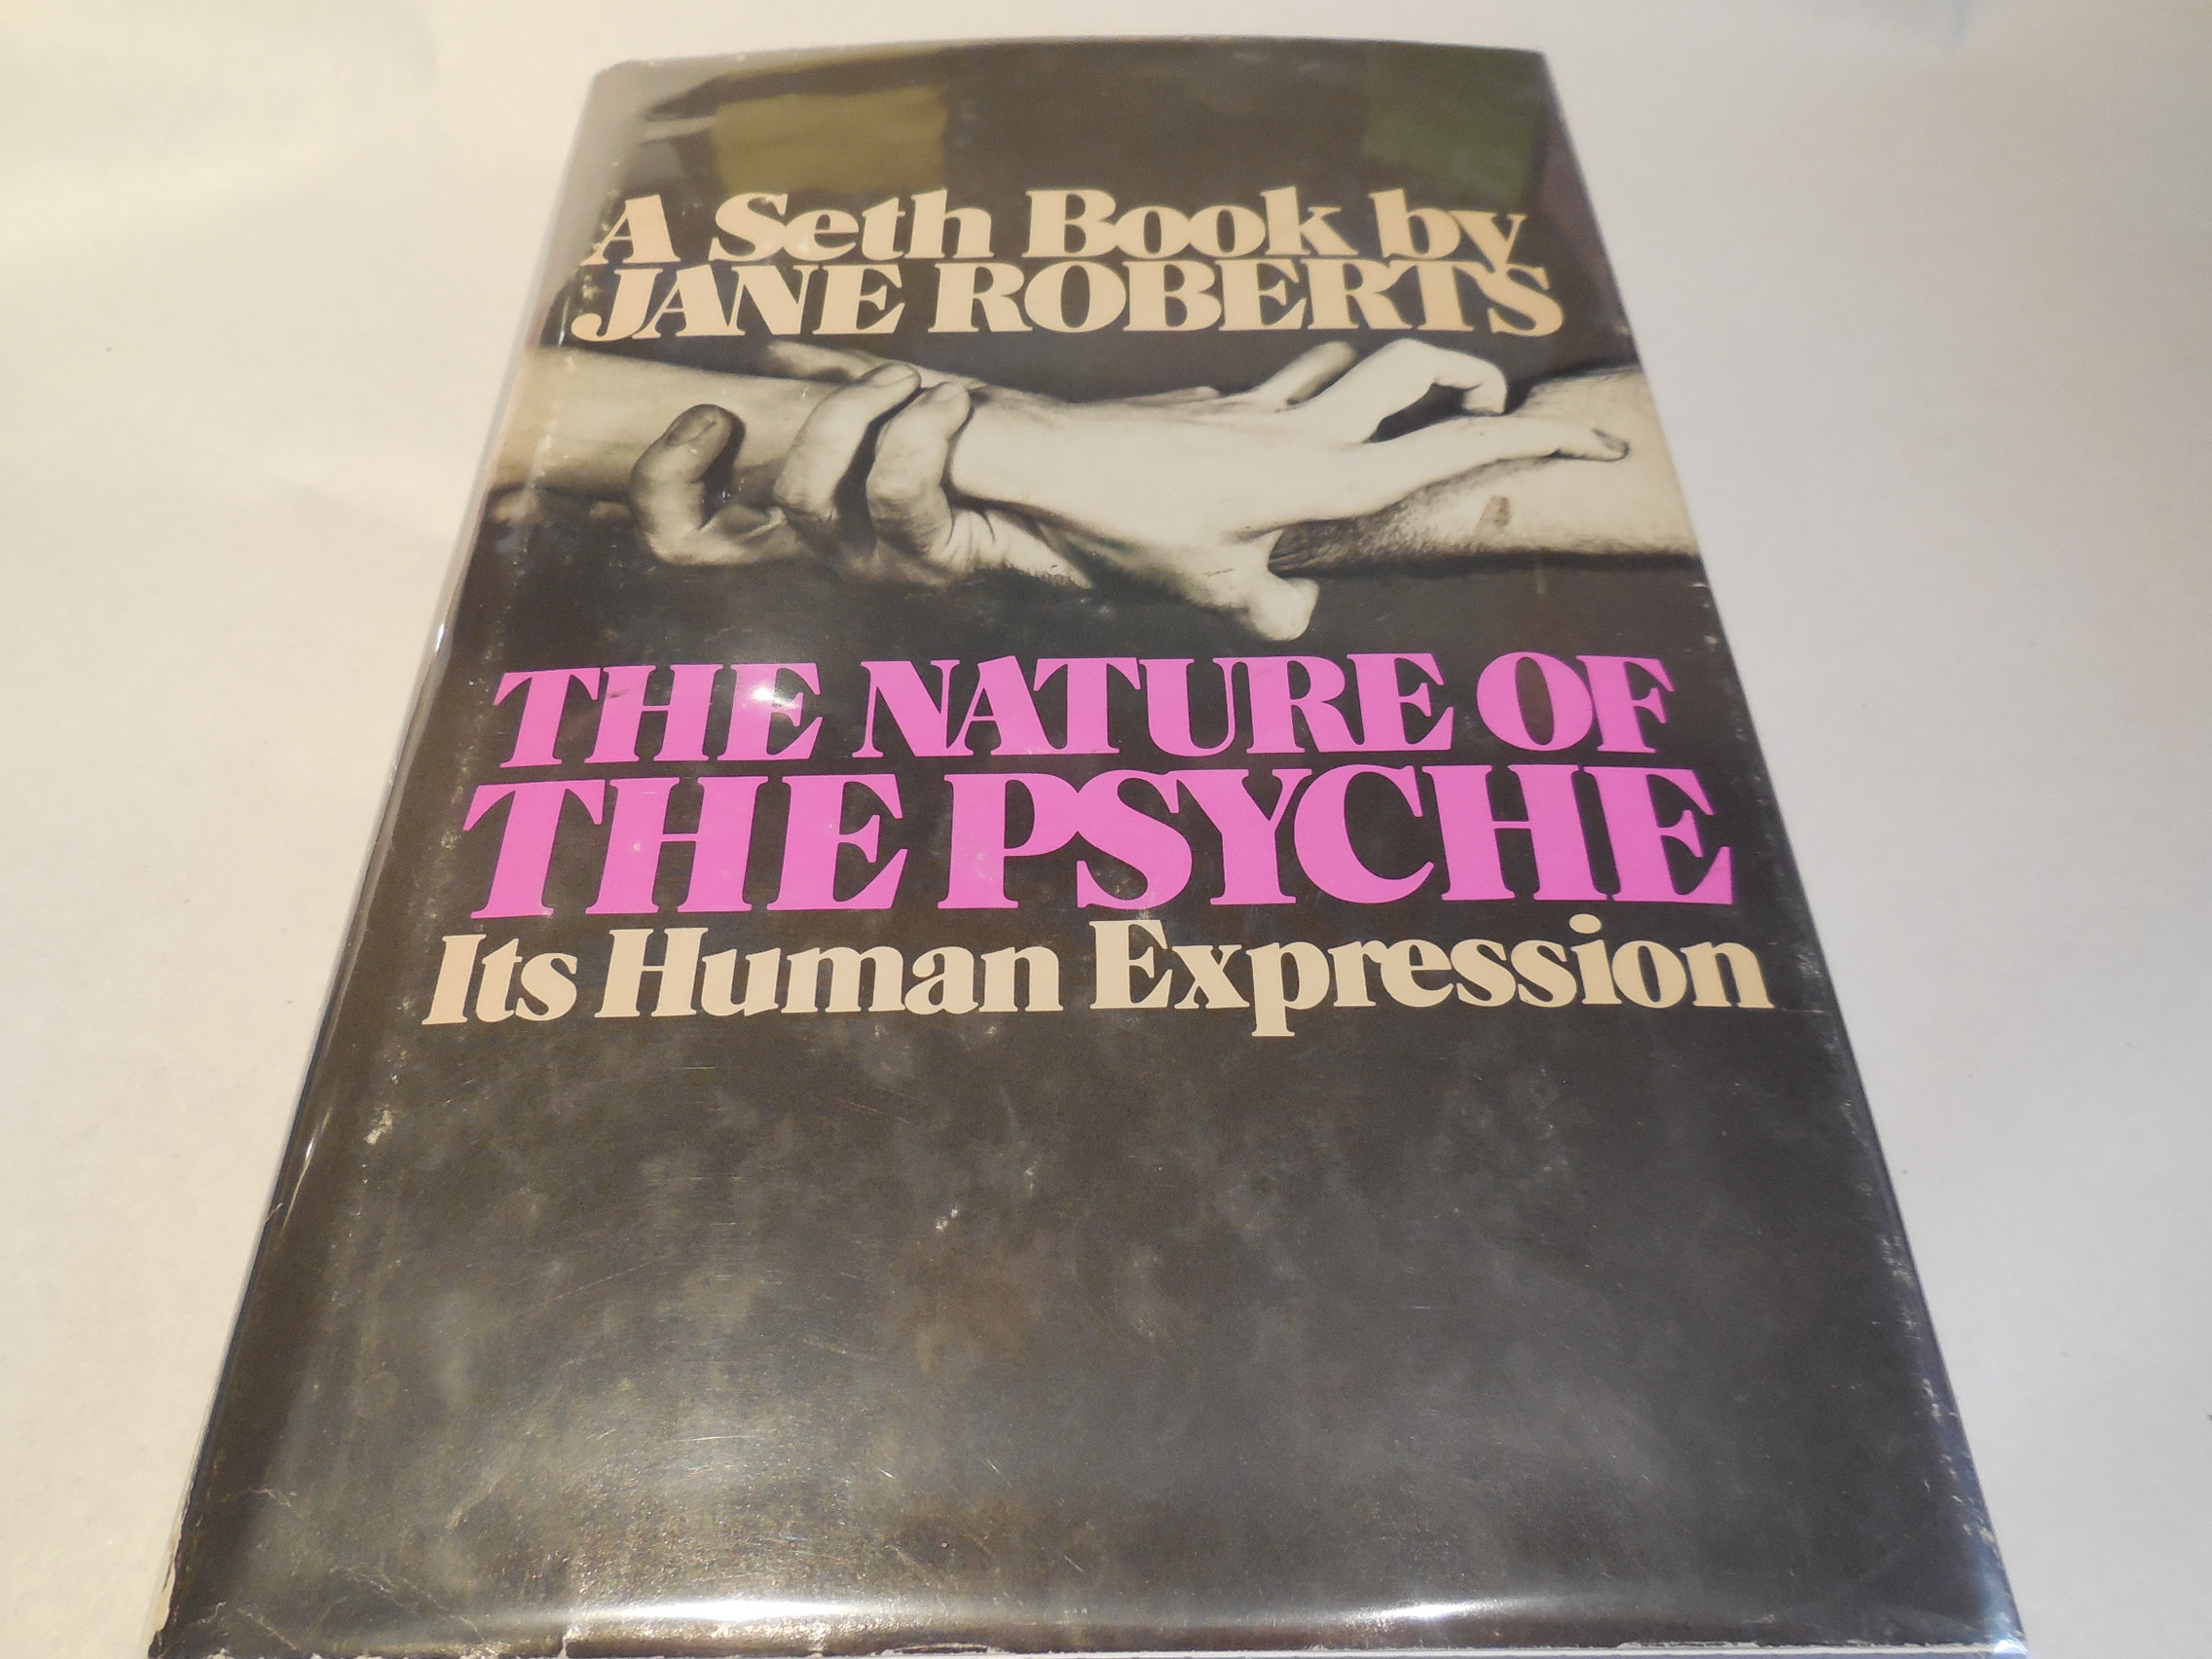 Image for The Nature of the Psyche: Its Human Expression (A Seth Book)